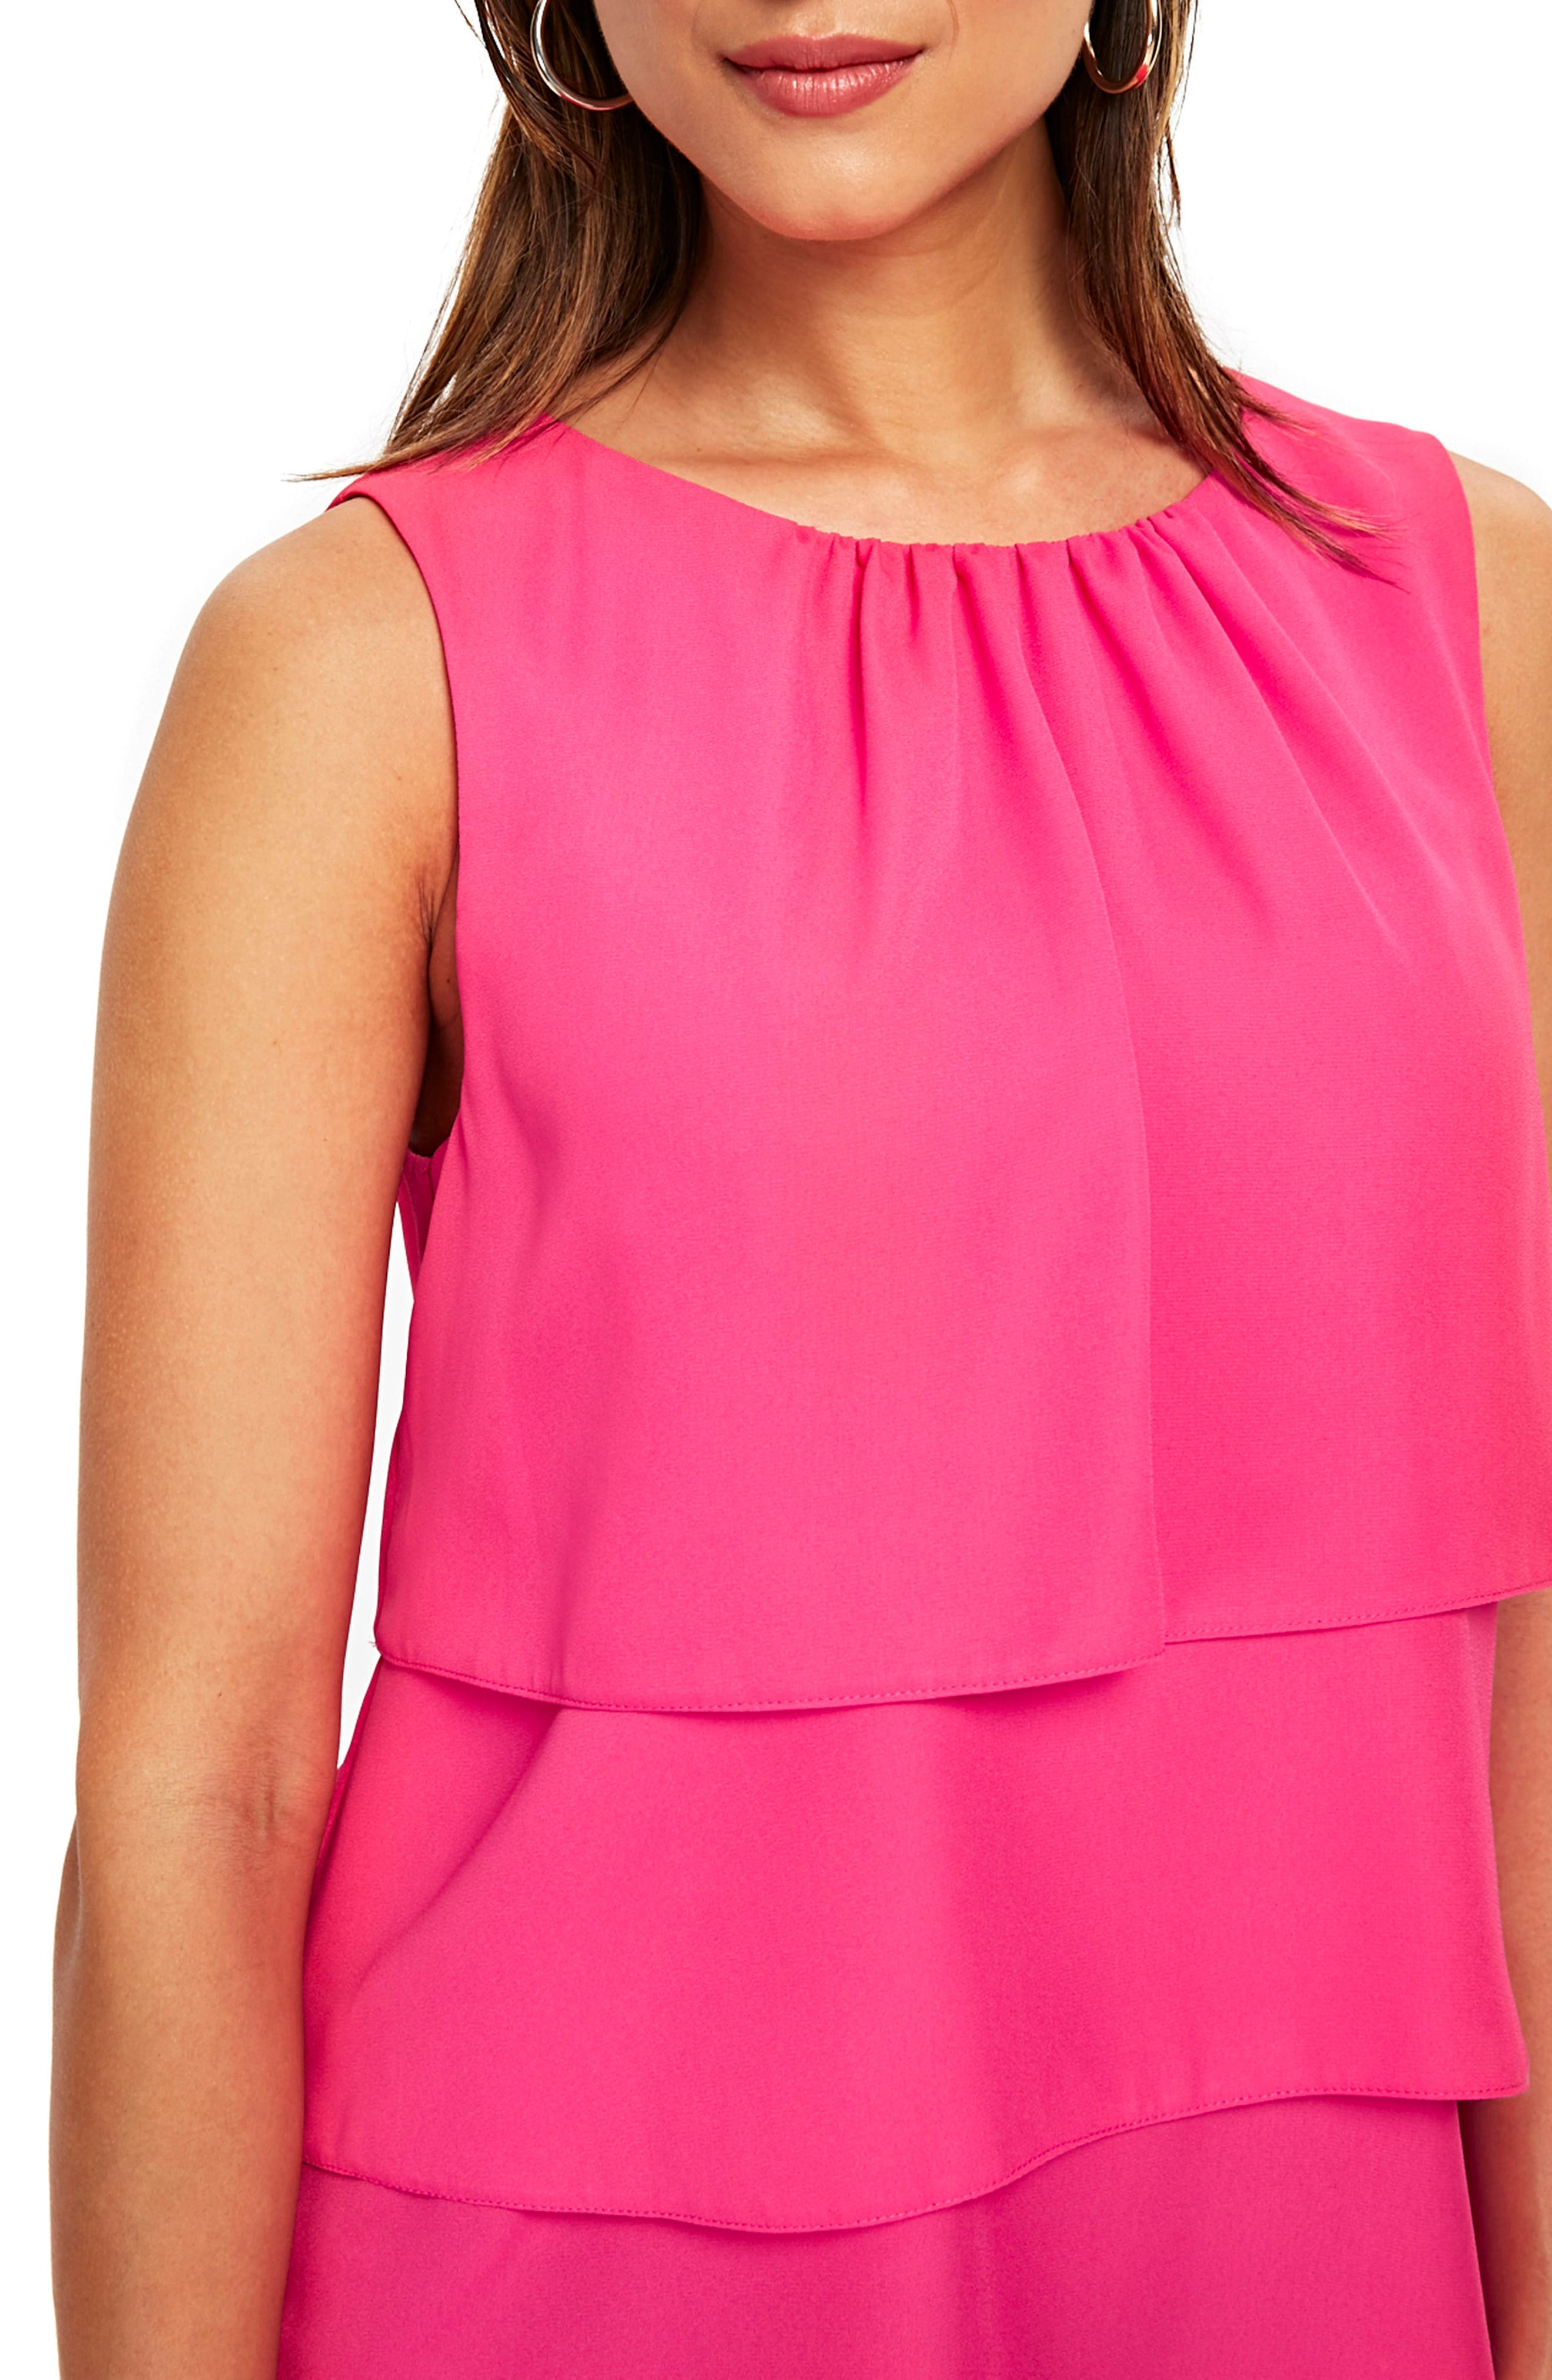 Tiered Sleeveless Top,                             Alternate thumbnail 3, color,                             Bright Pink